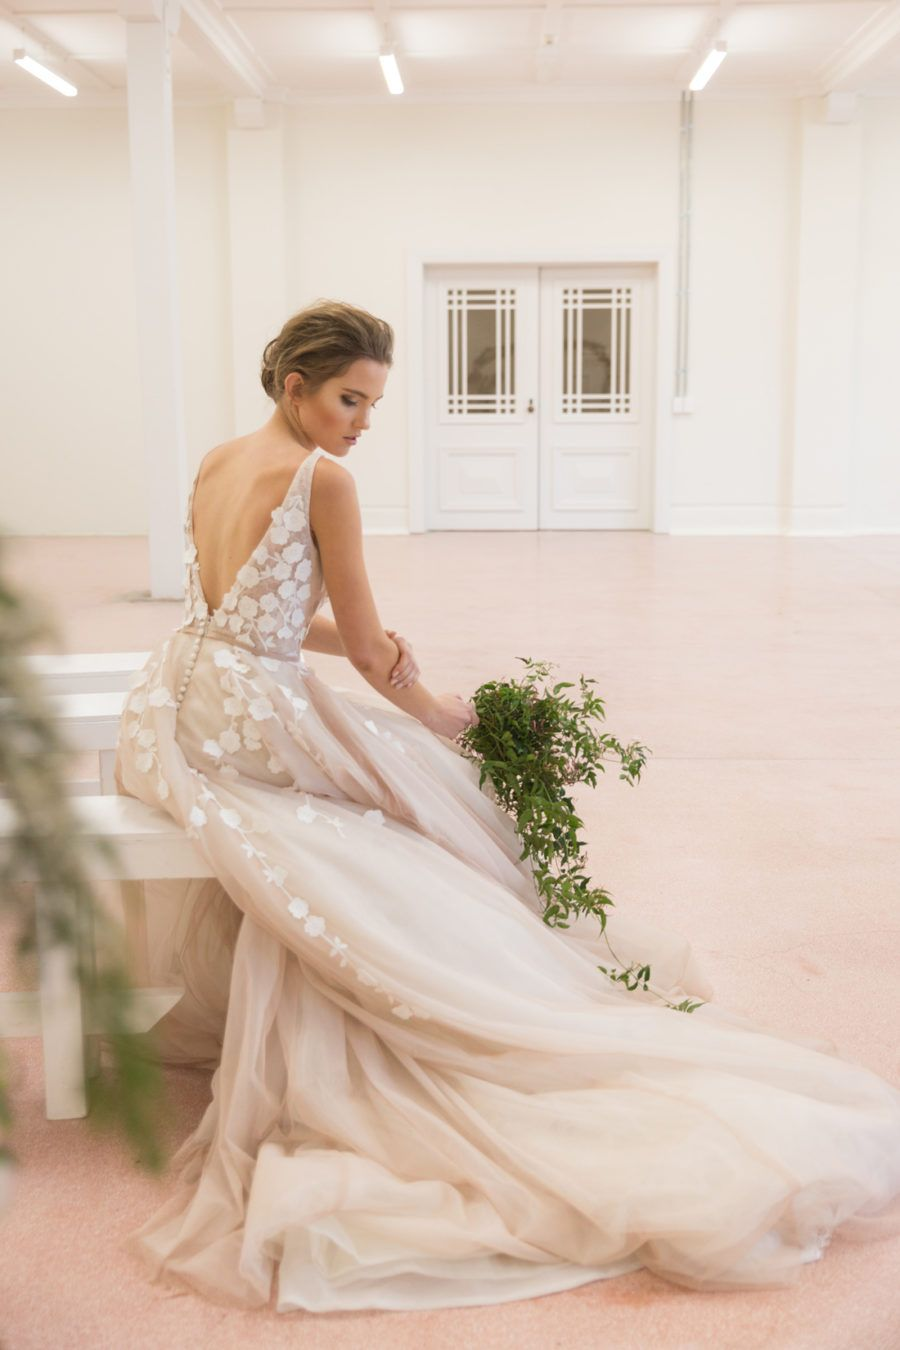 Timeless Inspiration in Blush & White | Wedding dress, Weddings and ...